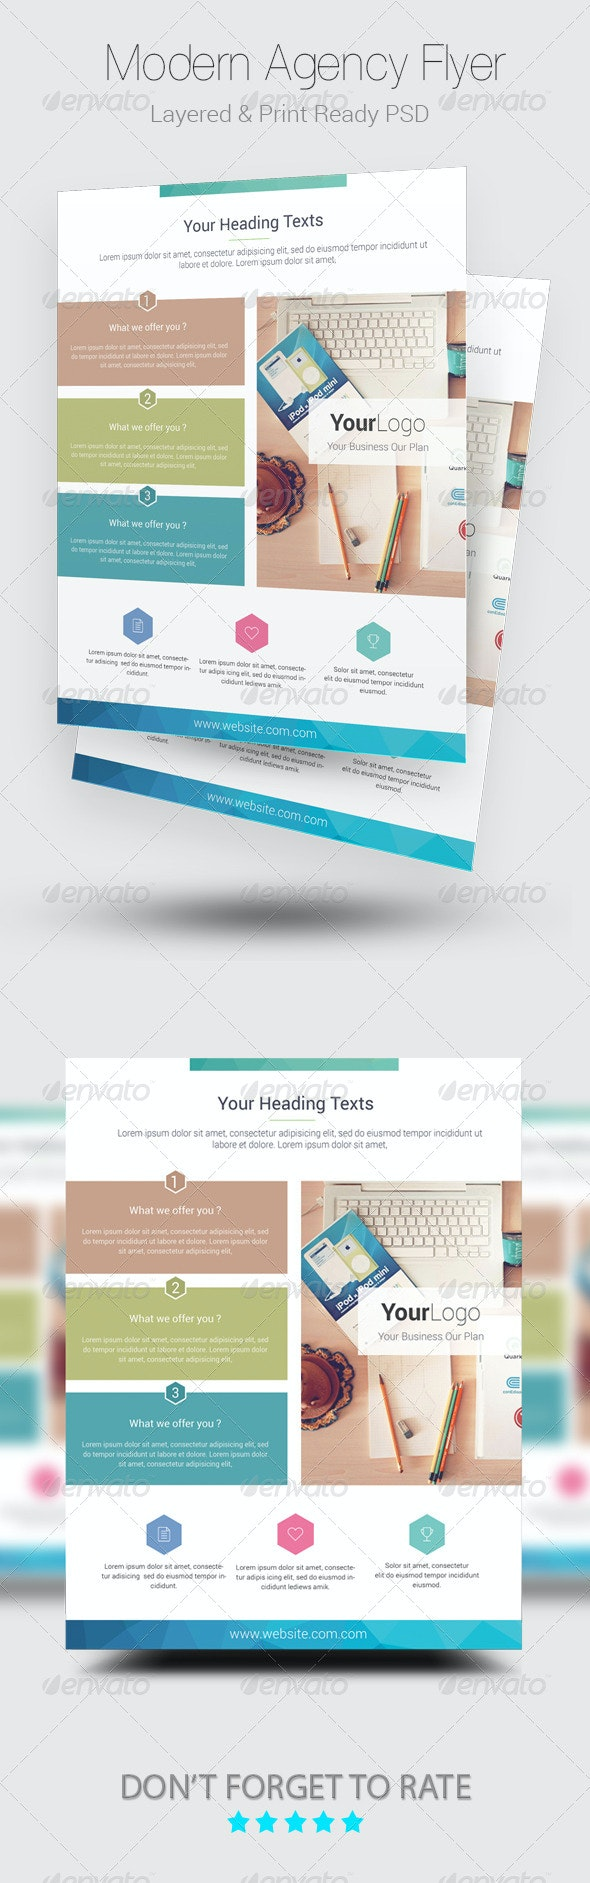 Modern Agency Flyer Template - Corporate Business Cards